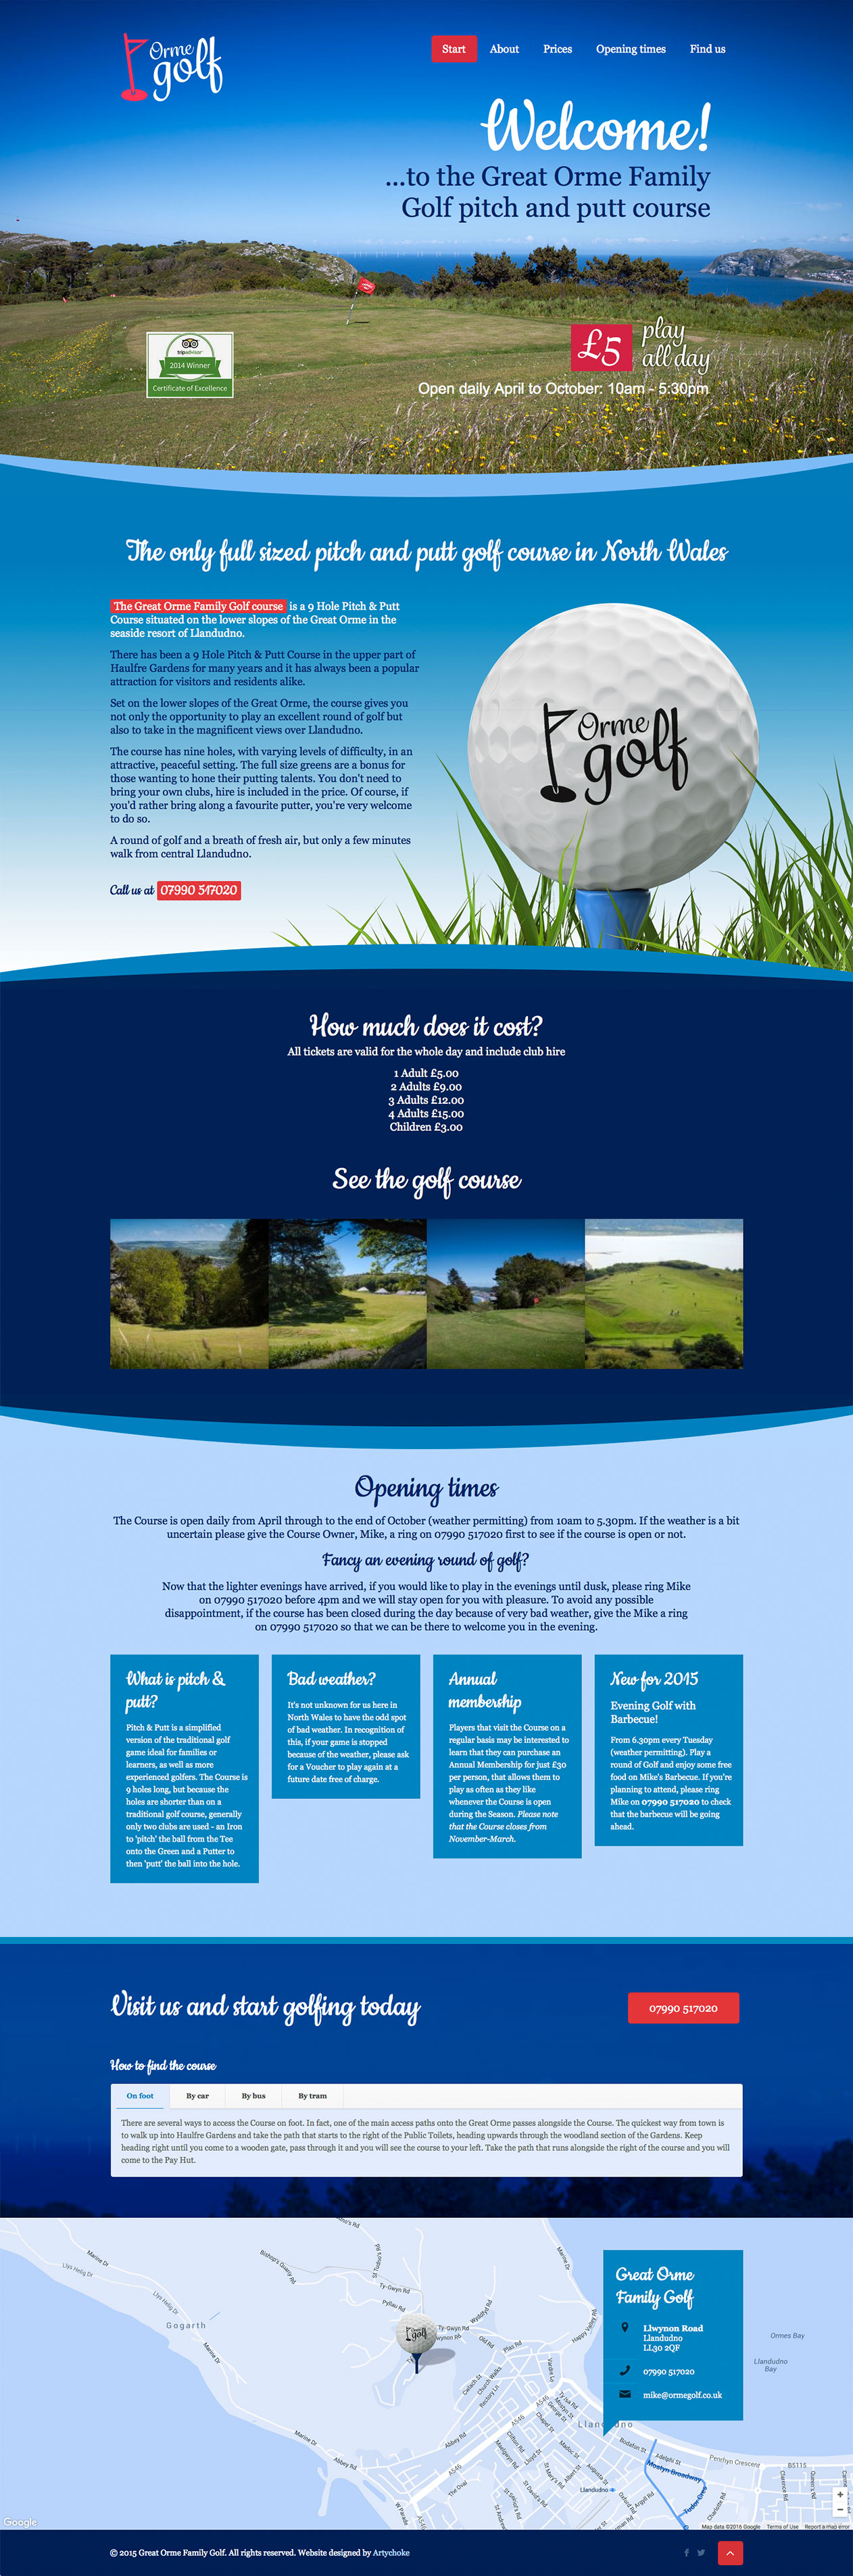 Orme Golf website